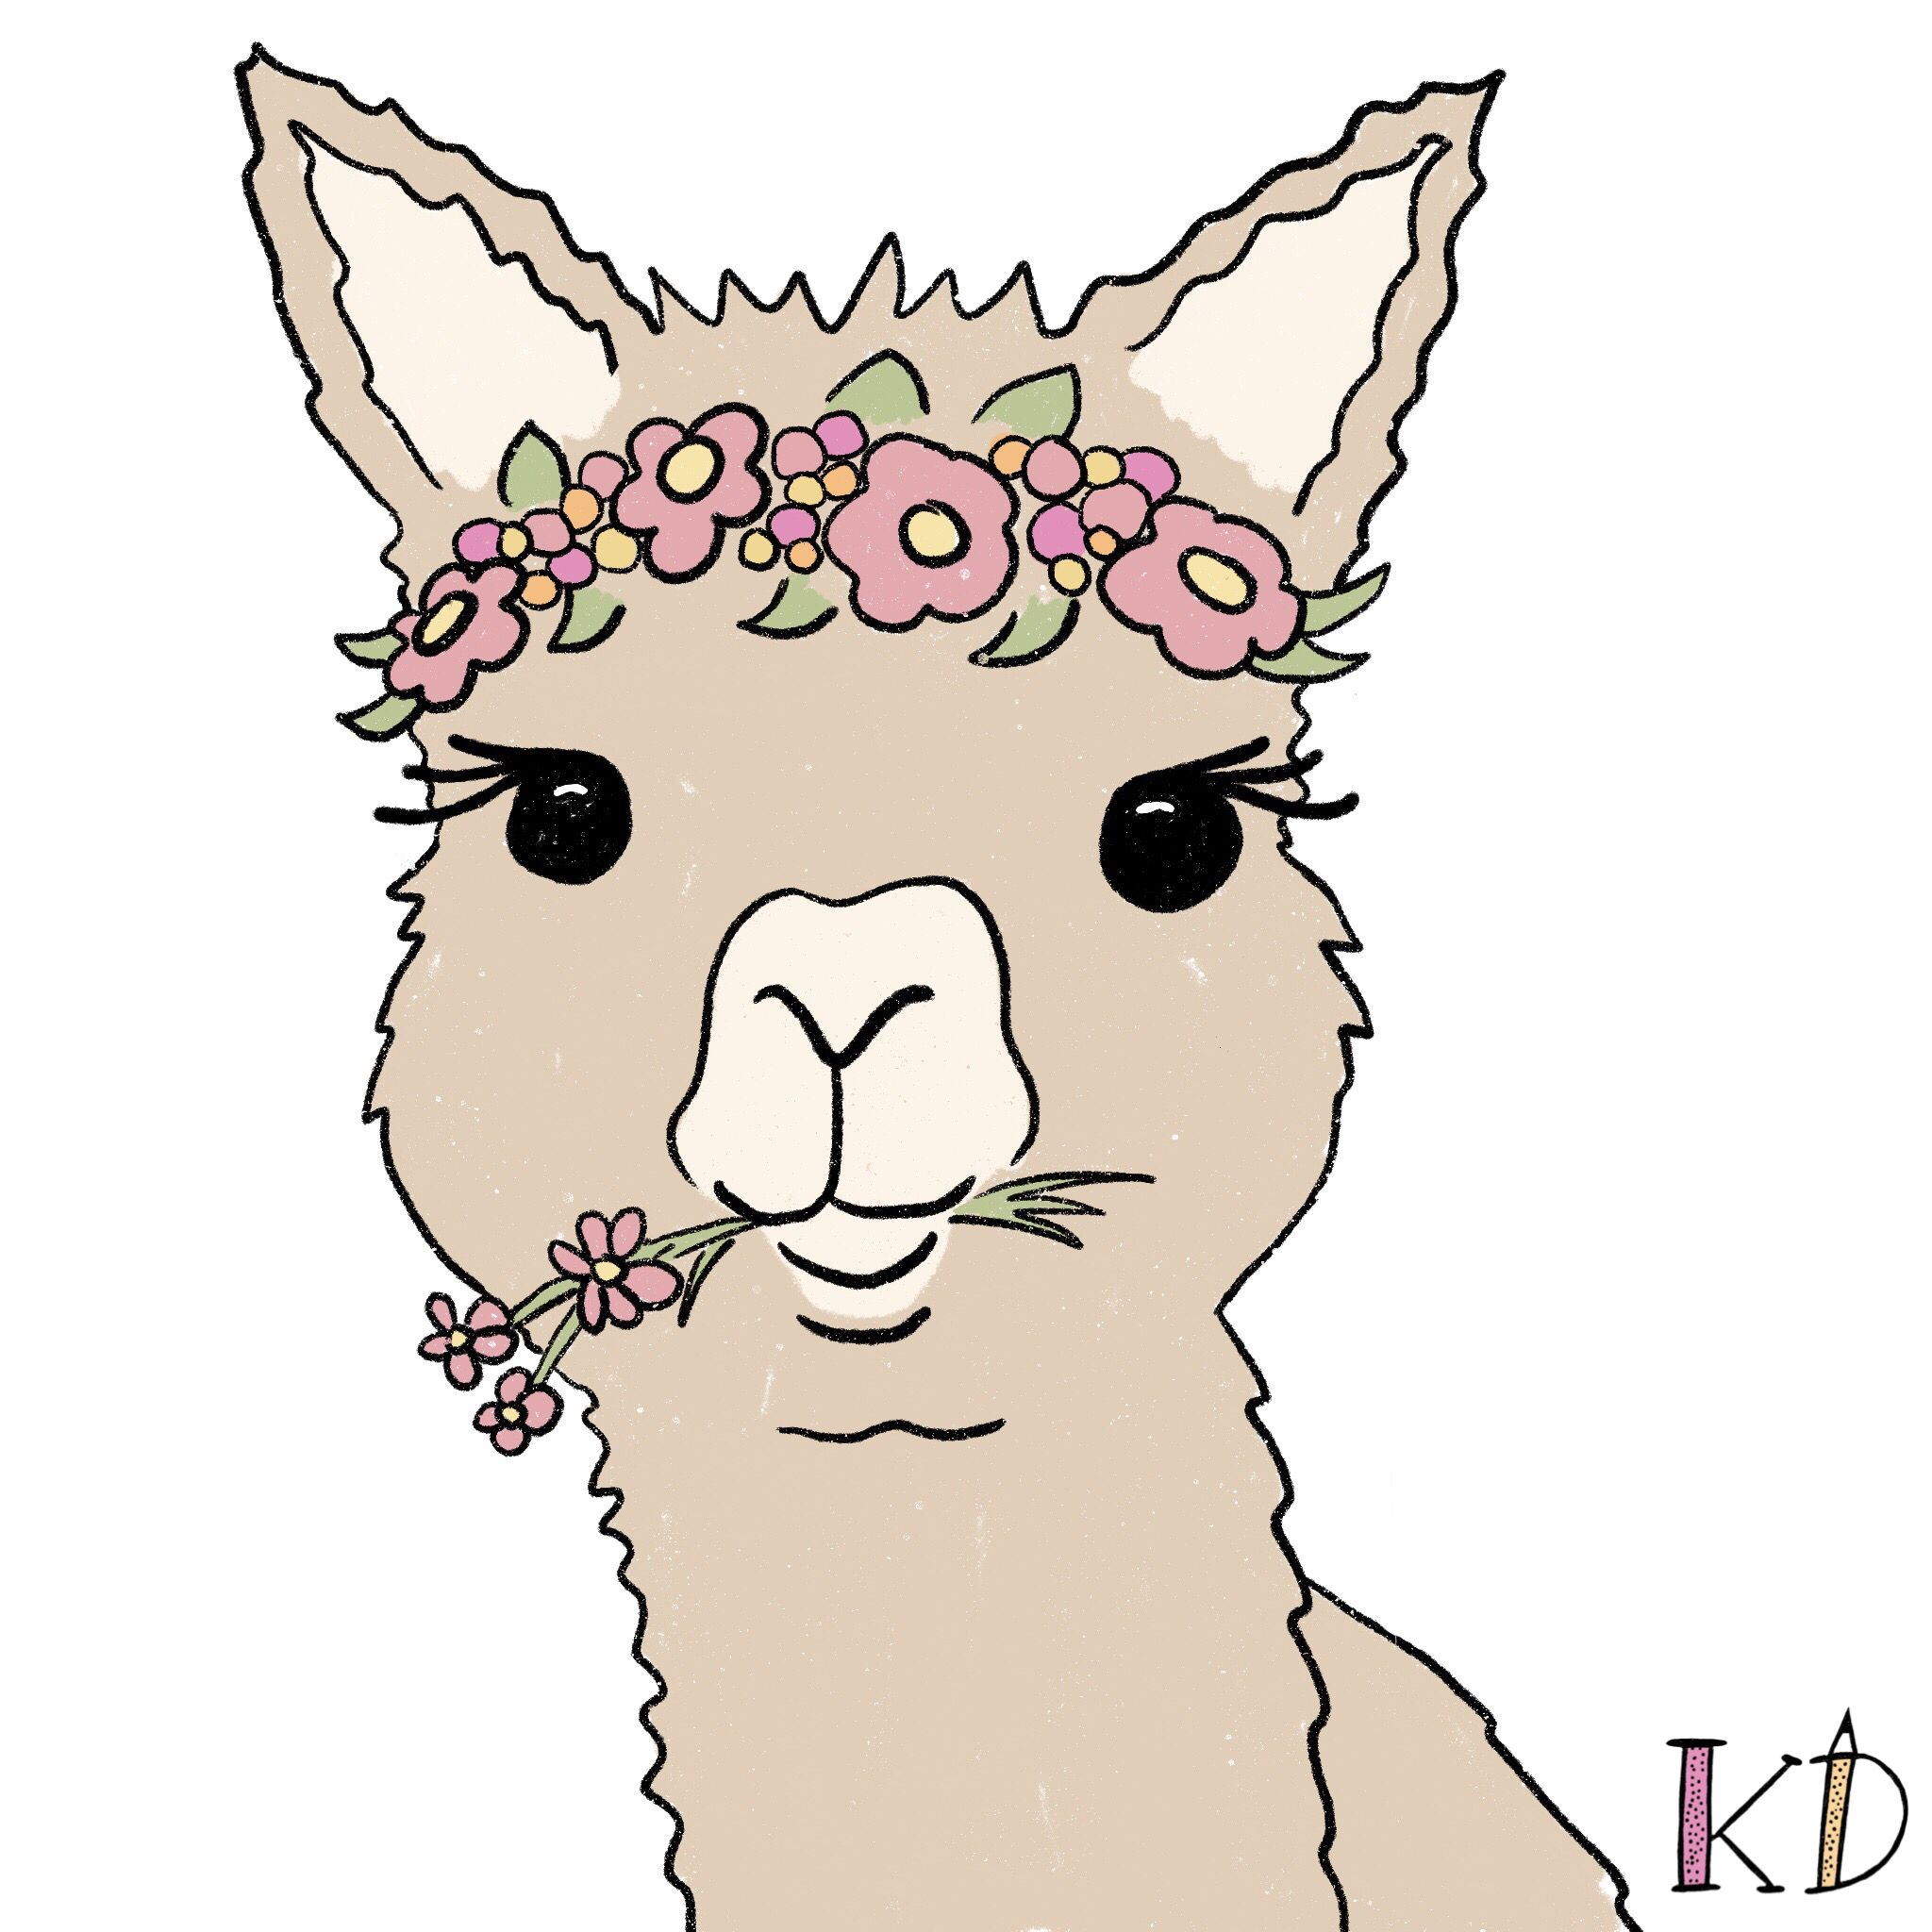 Alpaca With Flowers In 2021 Animal Illustration Drawings Face Illustration